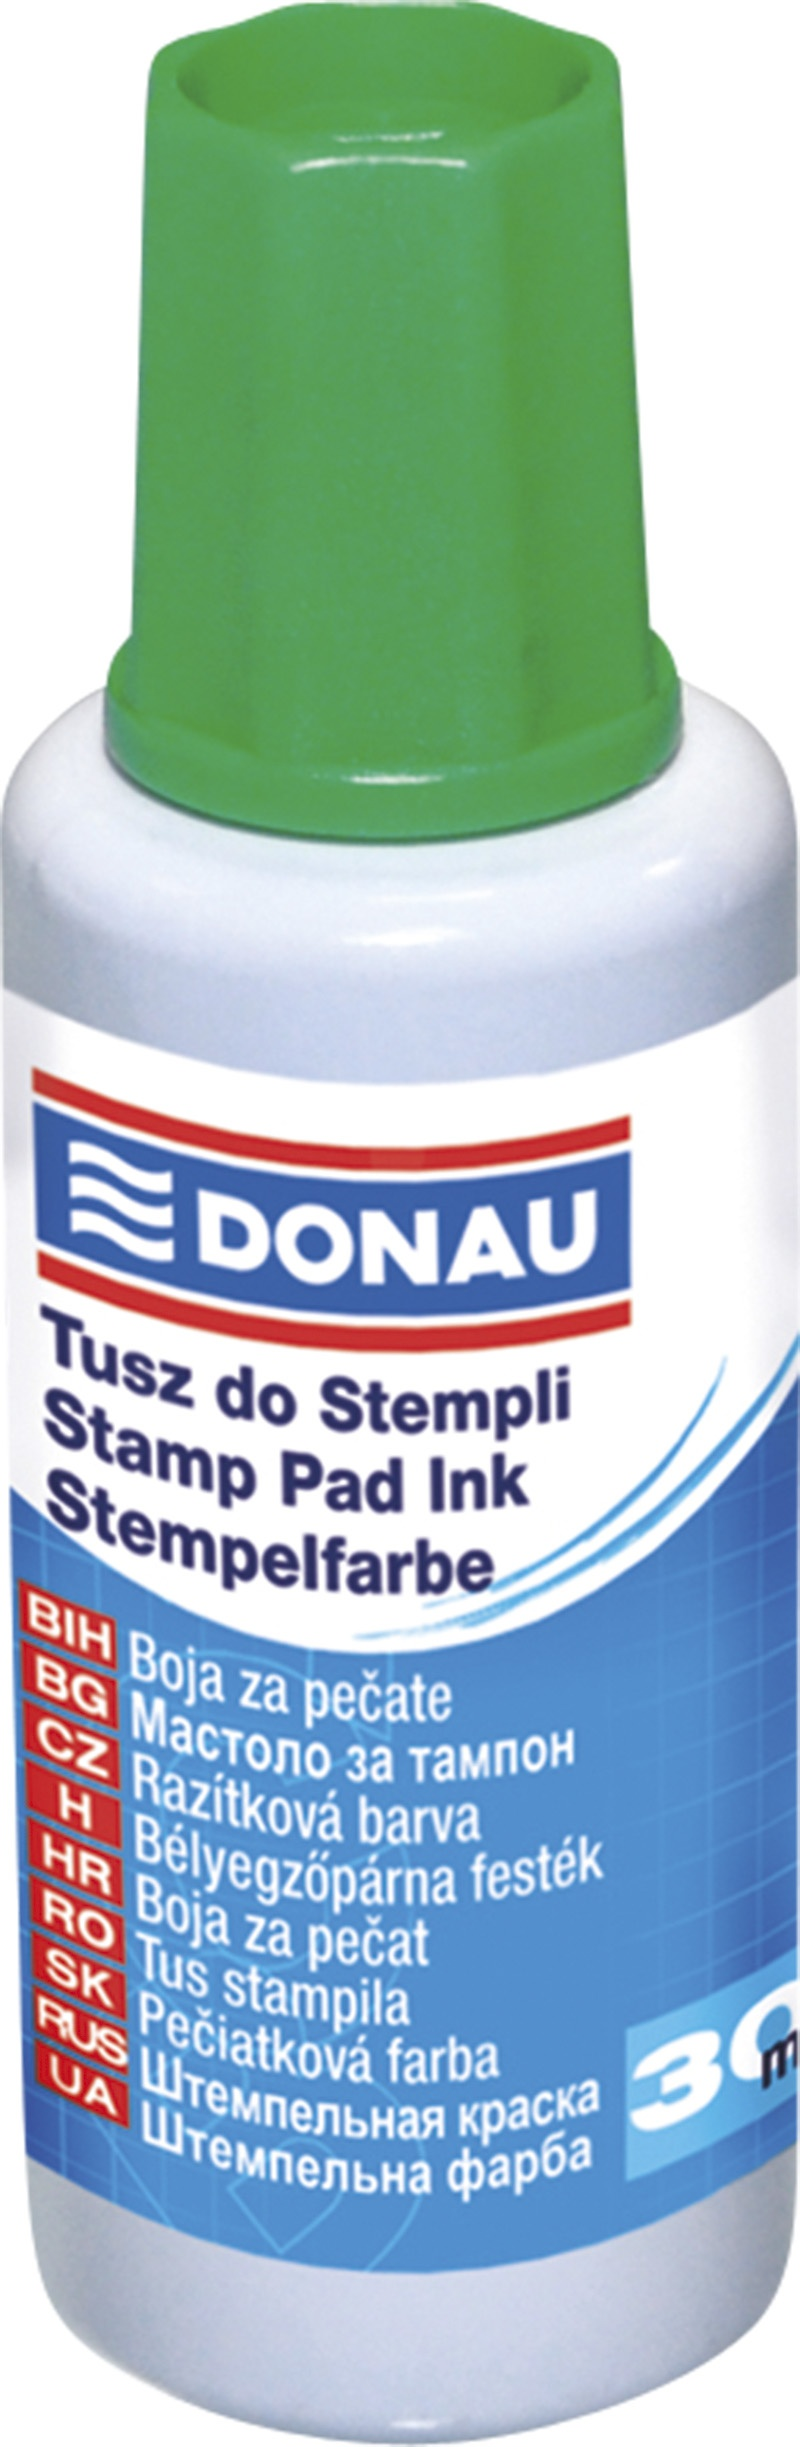 Stamp Ink DONAU, 30ml, green